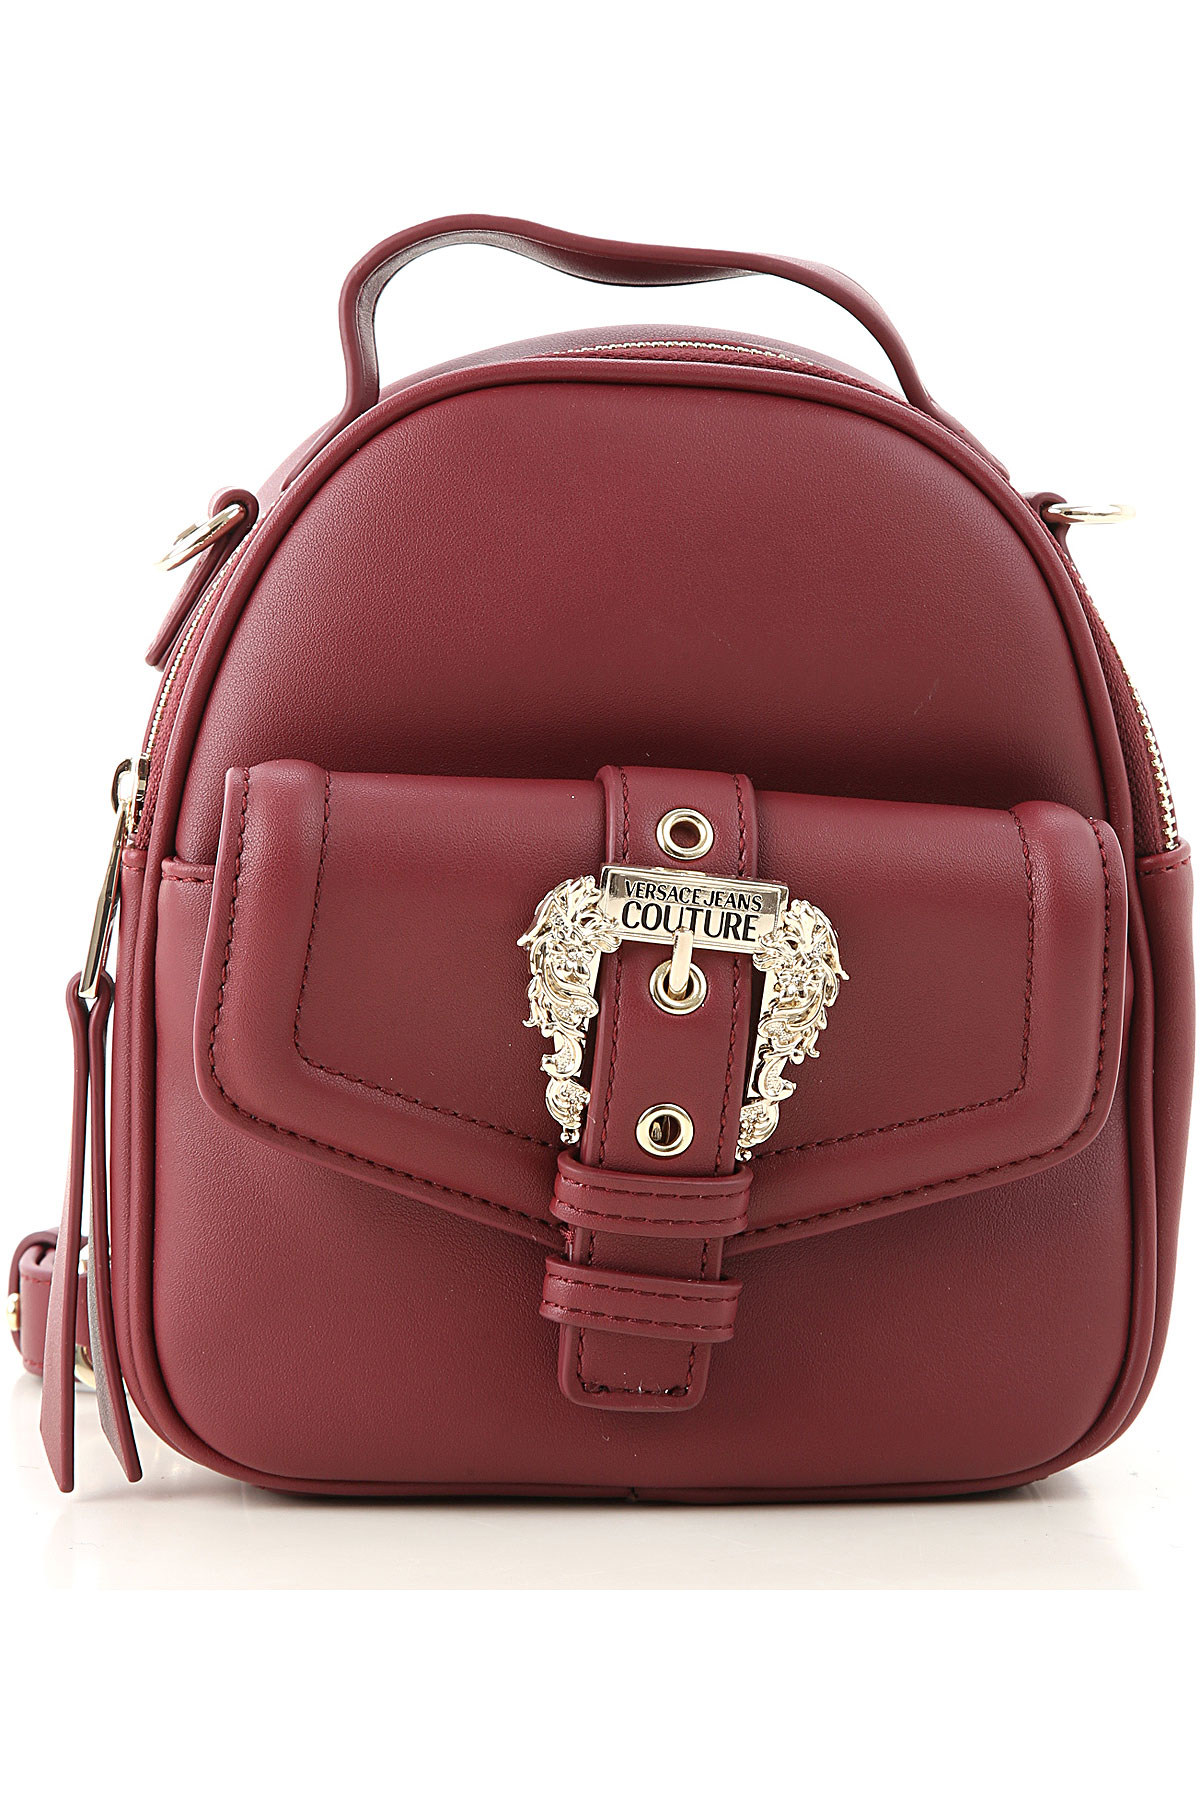 Versace Jeans Couture Backpack for Women On Sale, Bordeaux, Leather, 2019